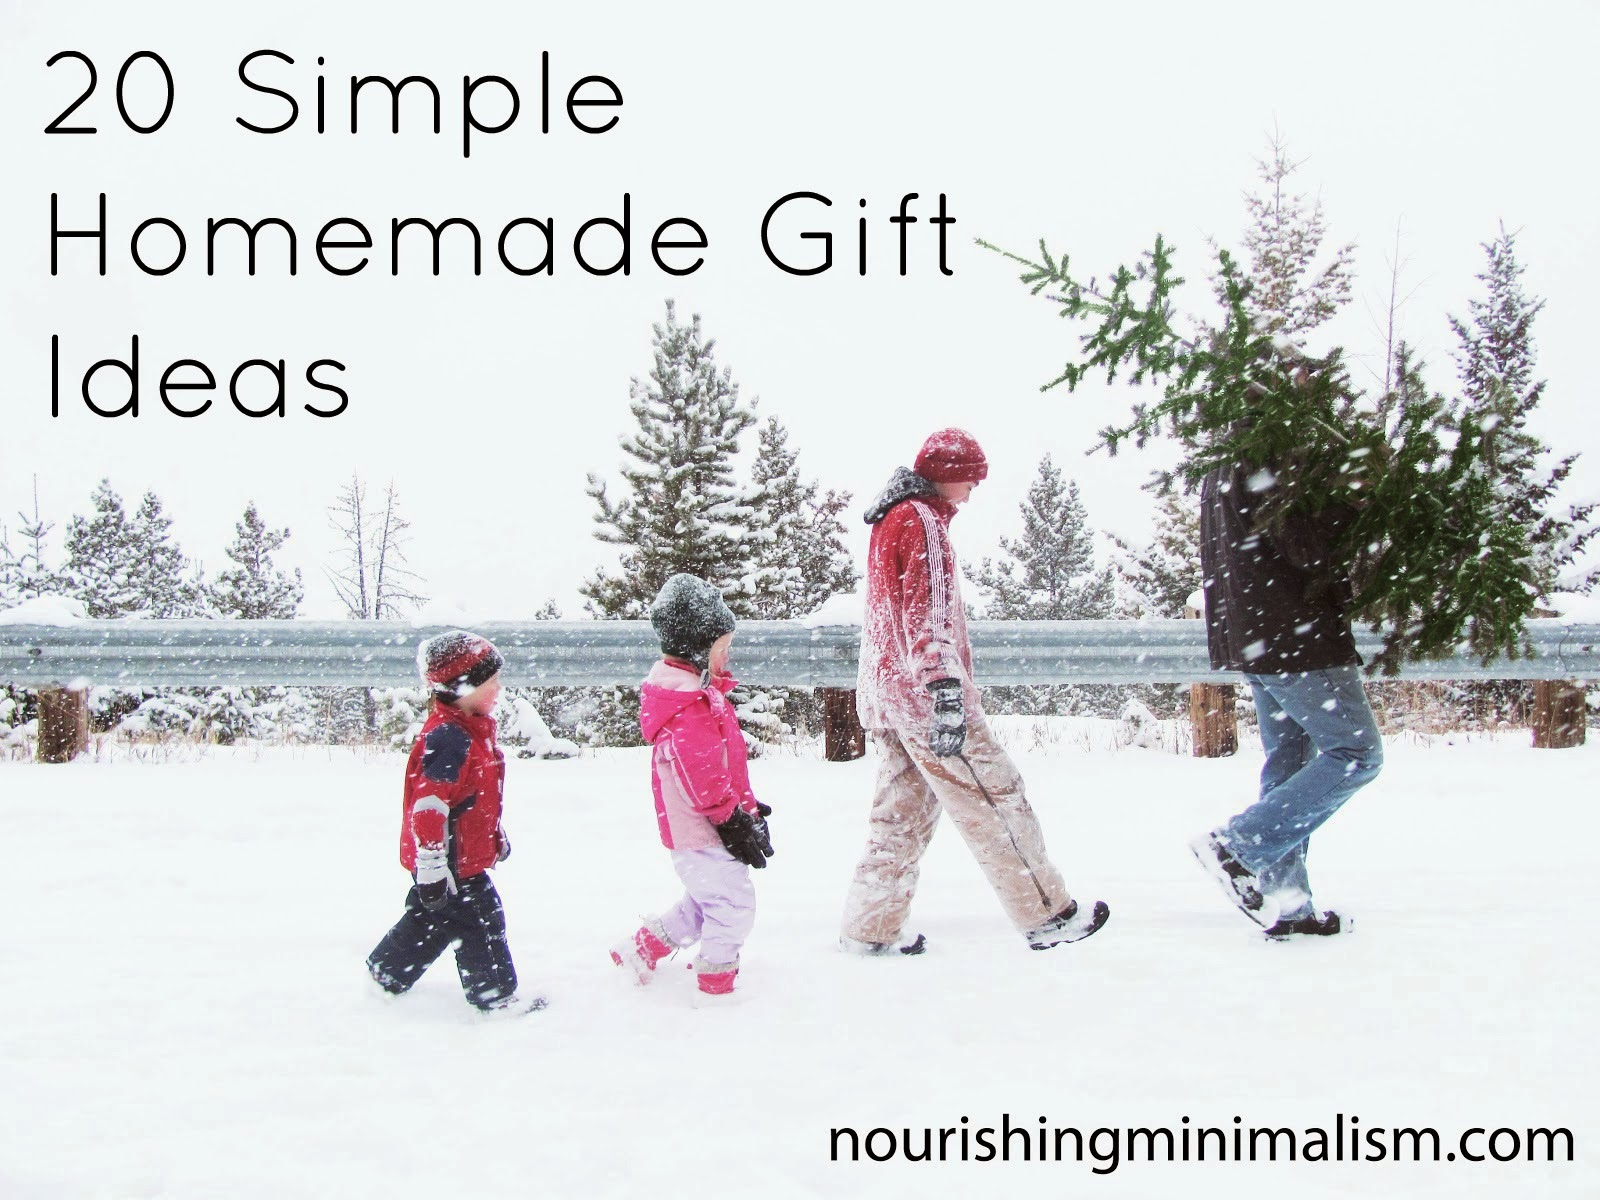 20 Simple Homemade Gift Ideas